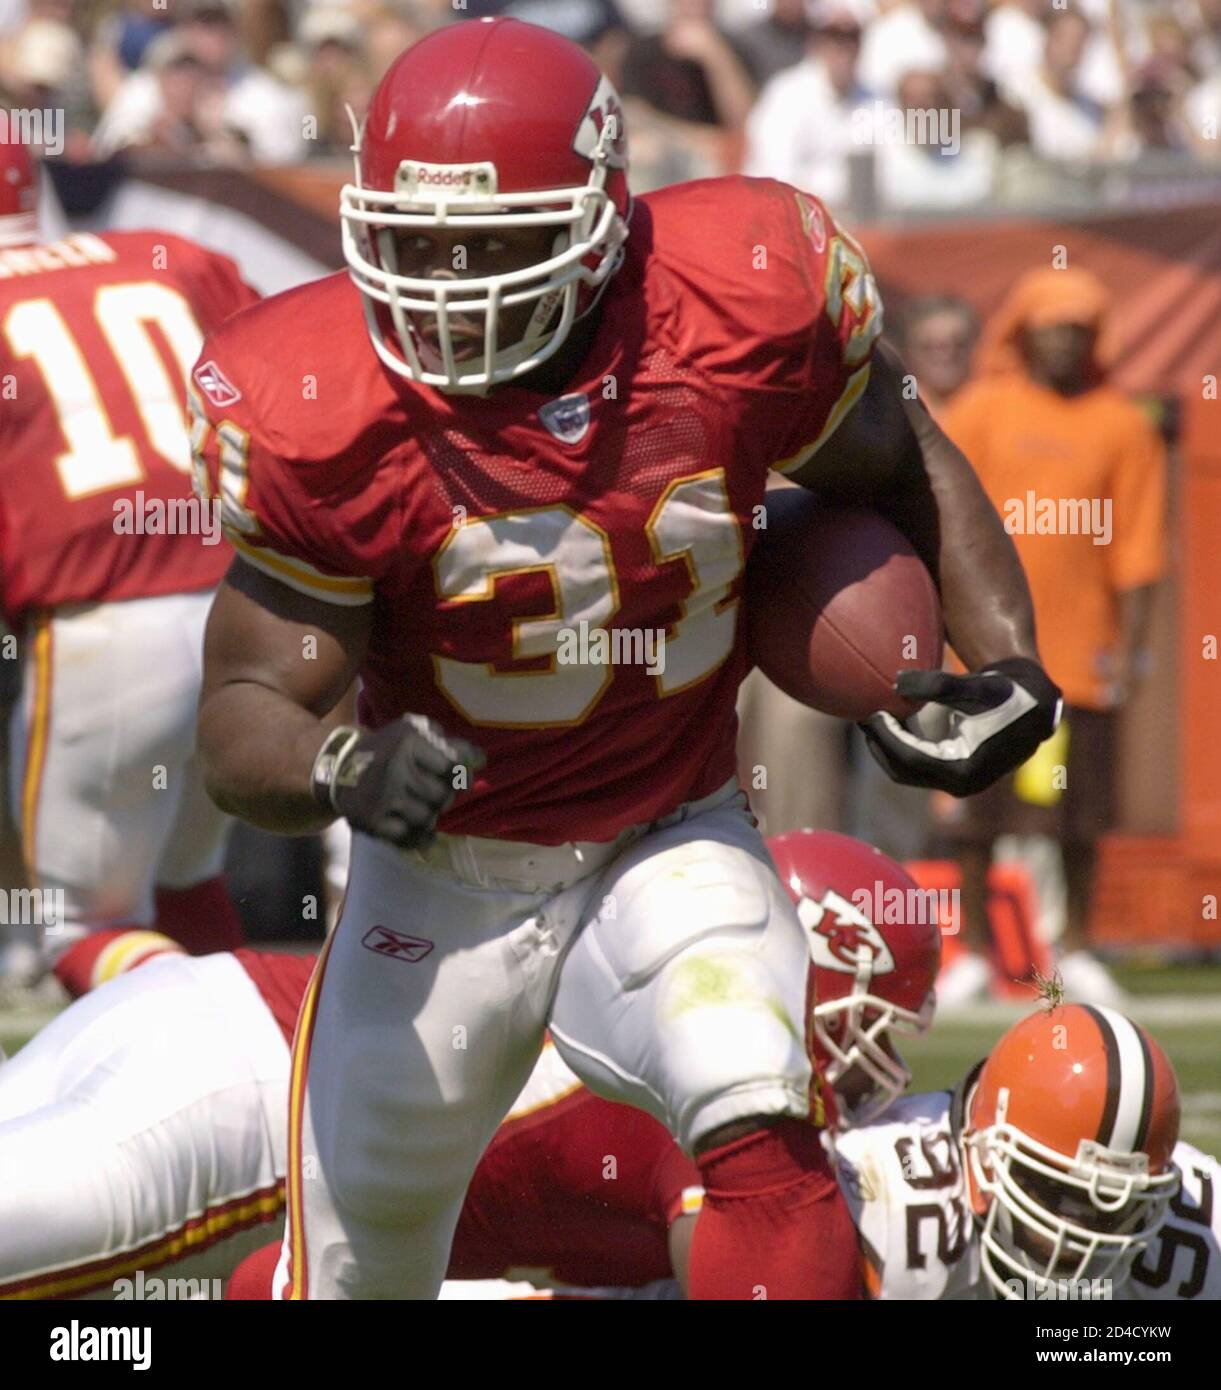 Kansas City Chiefs Running Back Priest Holmes Scores A Touchdown In The Second Quarter Against The Cleveland Browns At Cleveland Browns Stadium September 8 2002 Reuters Ron Kuntz Rk Hb Stock Photo Alamy